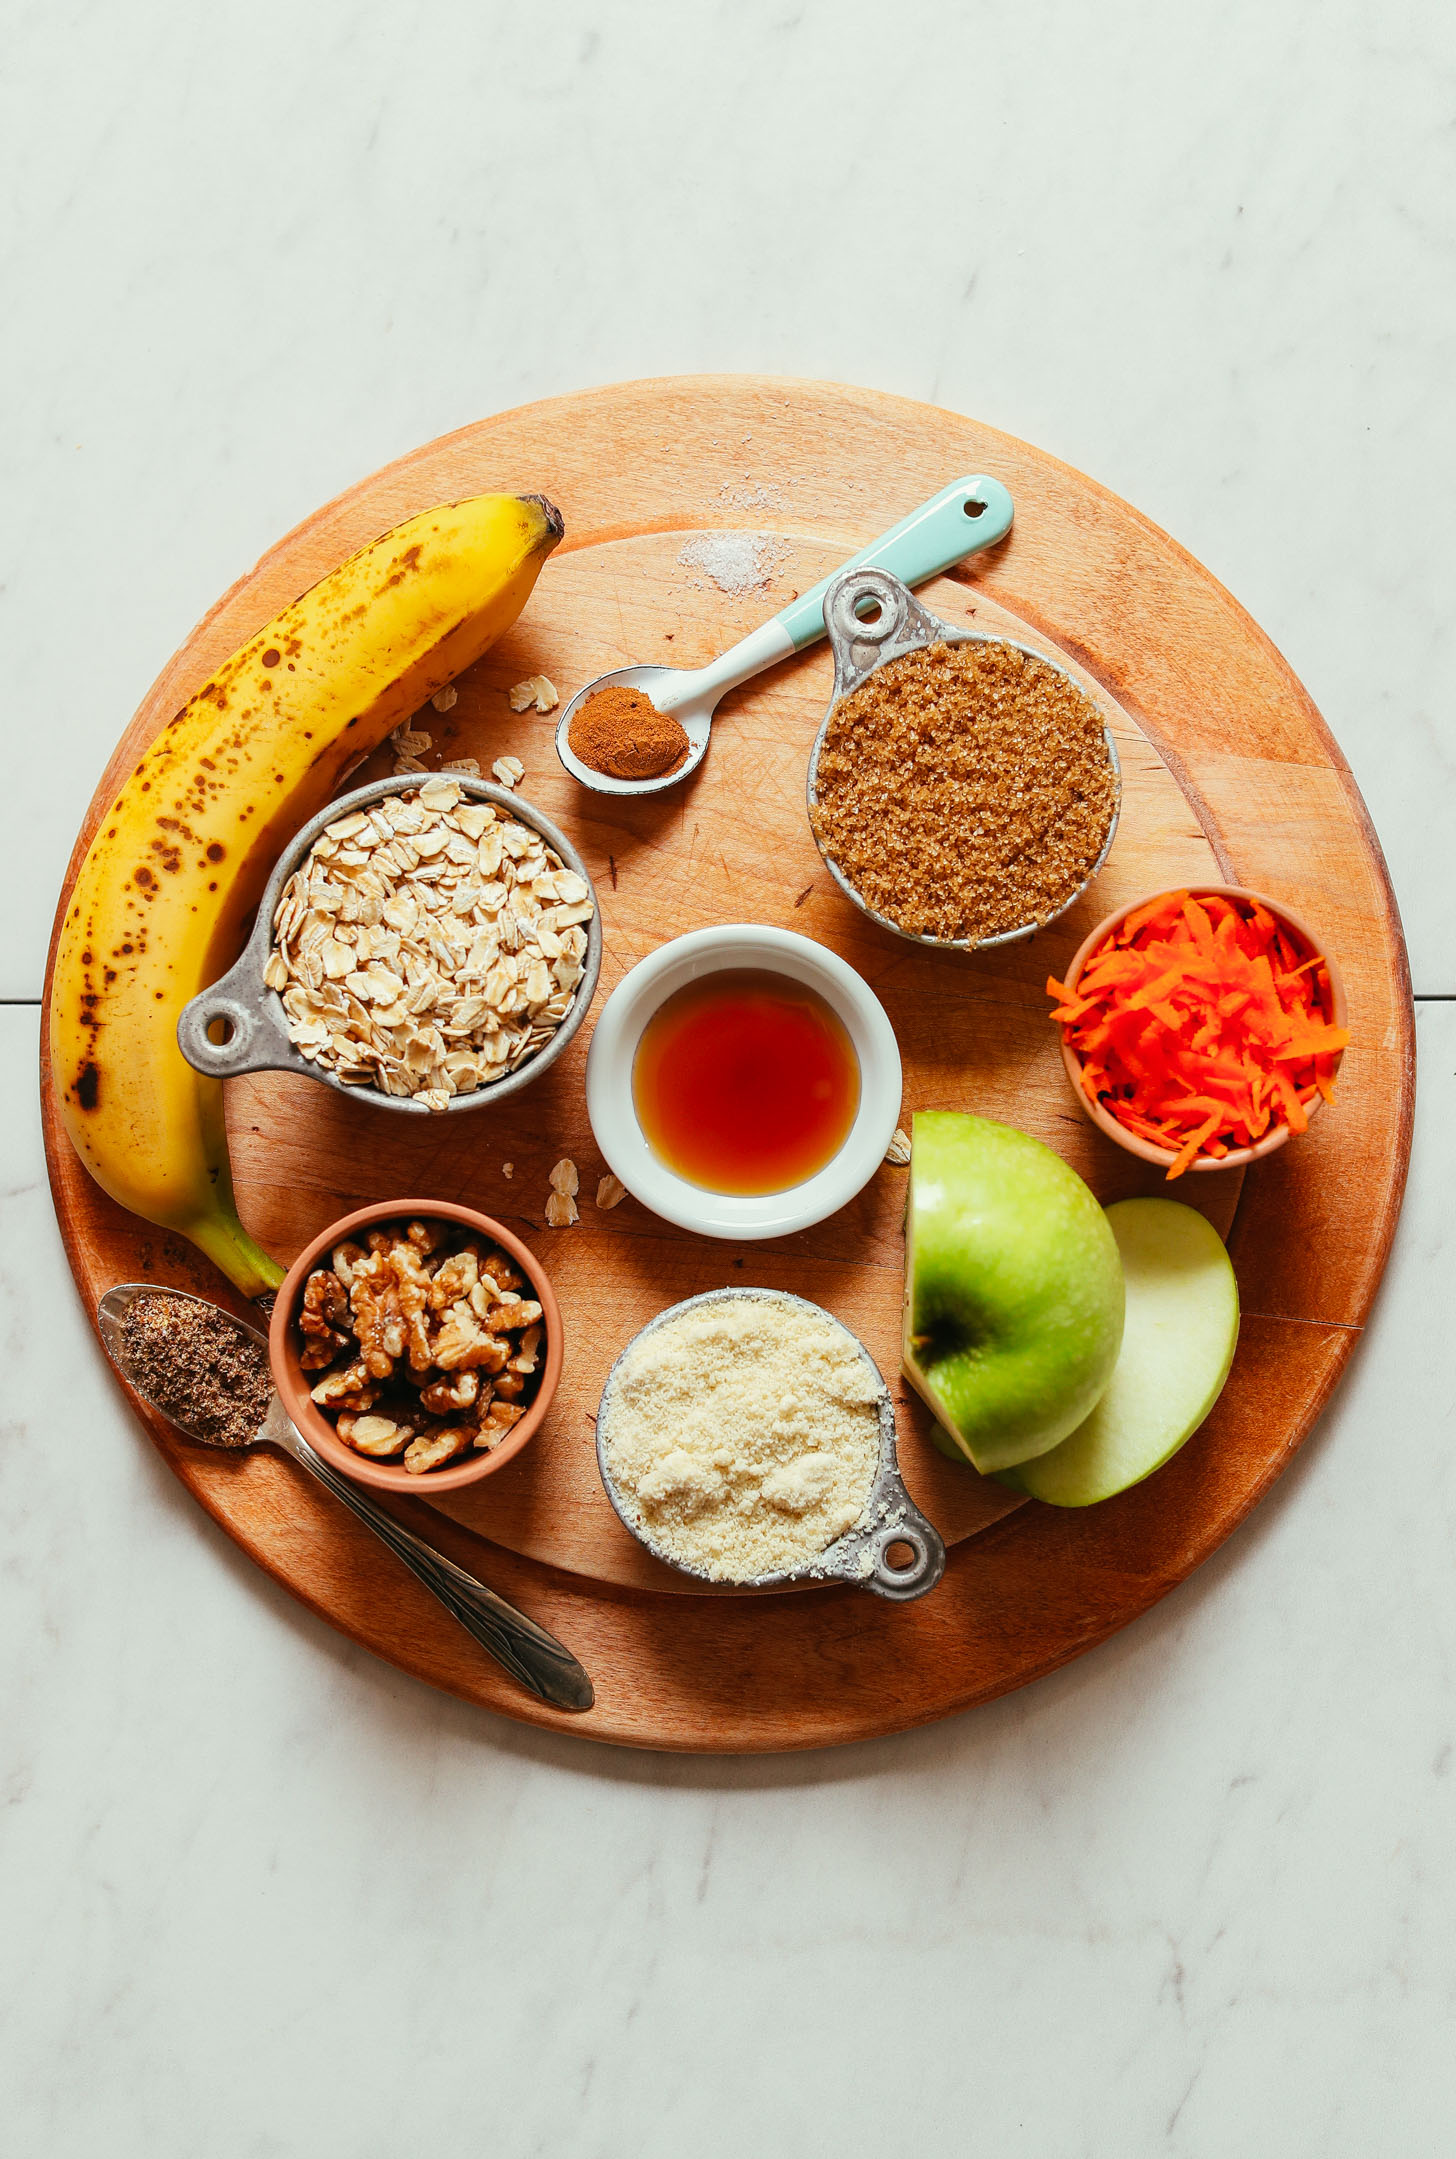 Wood cutting board with ingredients for making Carrot Apple Snack Cake